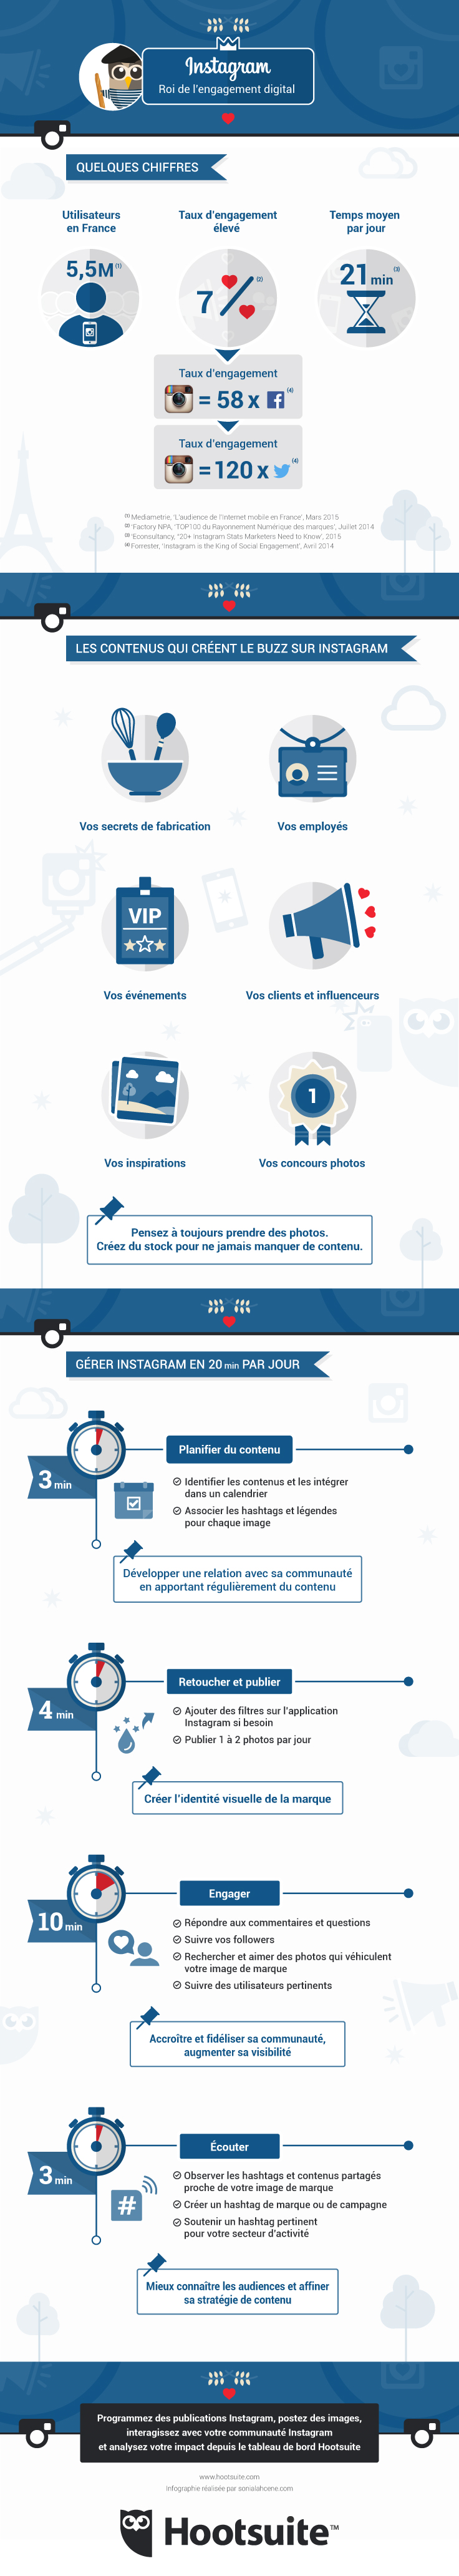 instagram_infography_final100